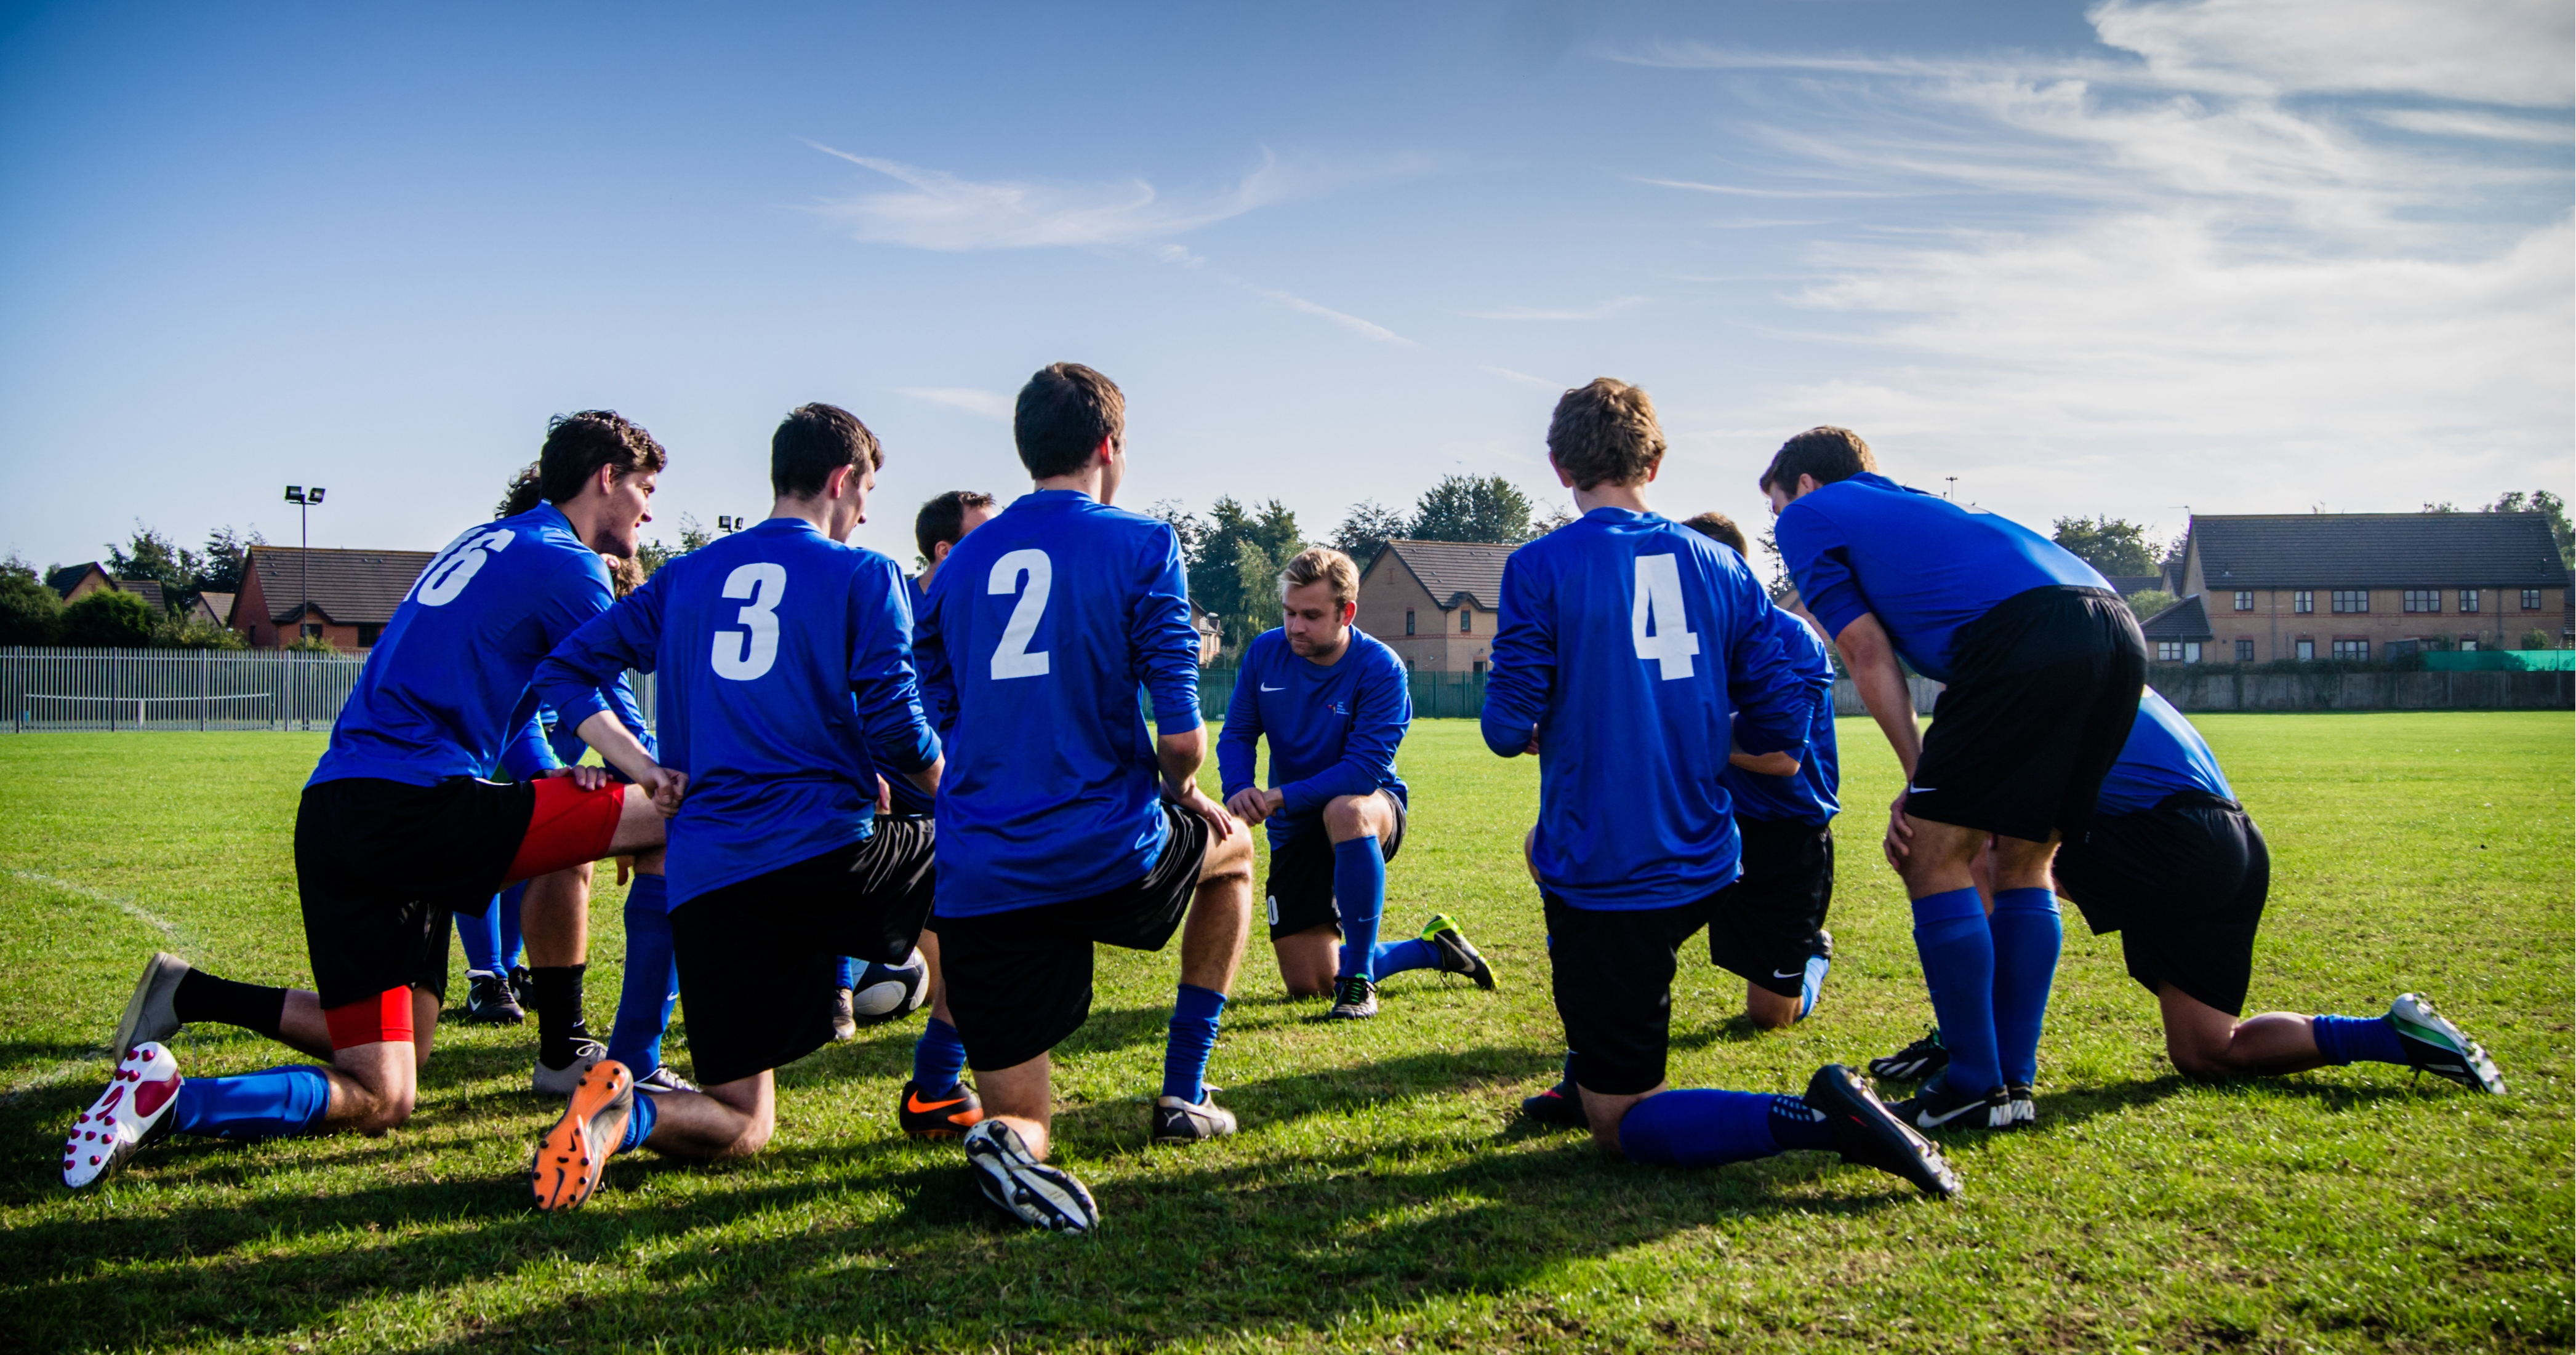 Soccer players kneel on a field.